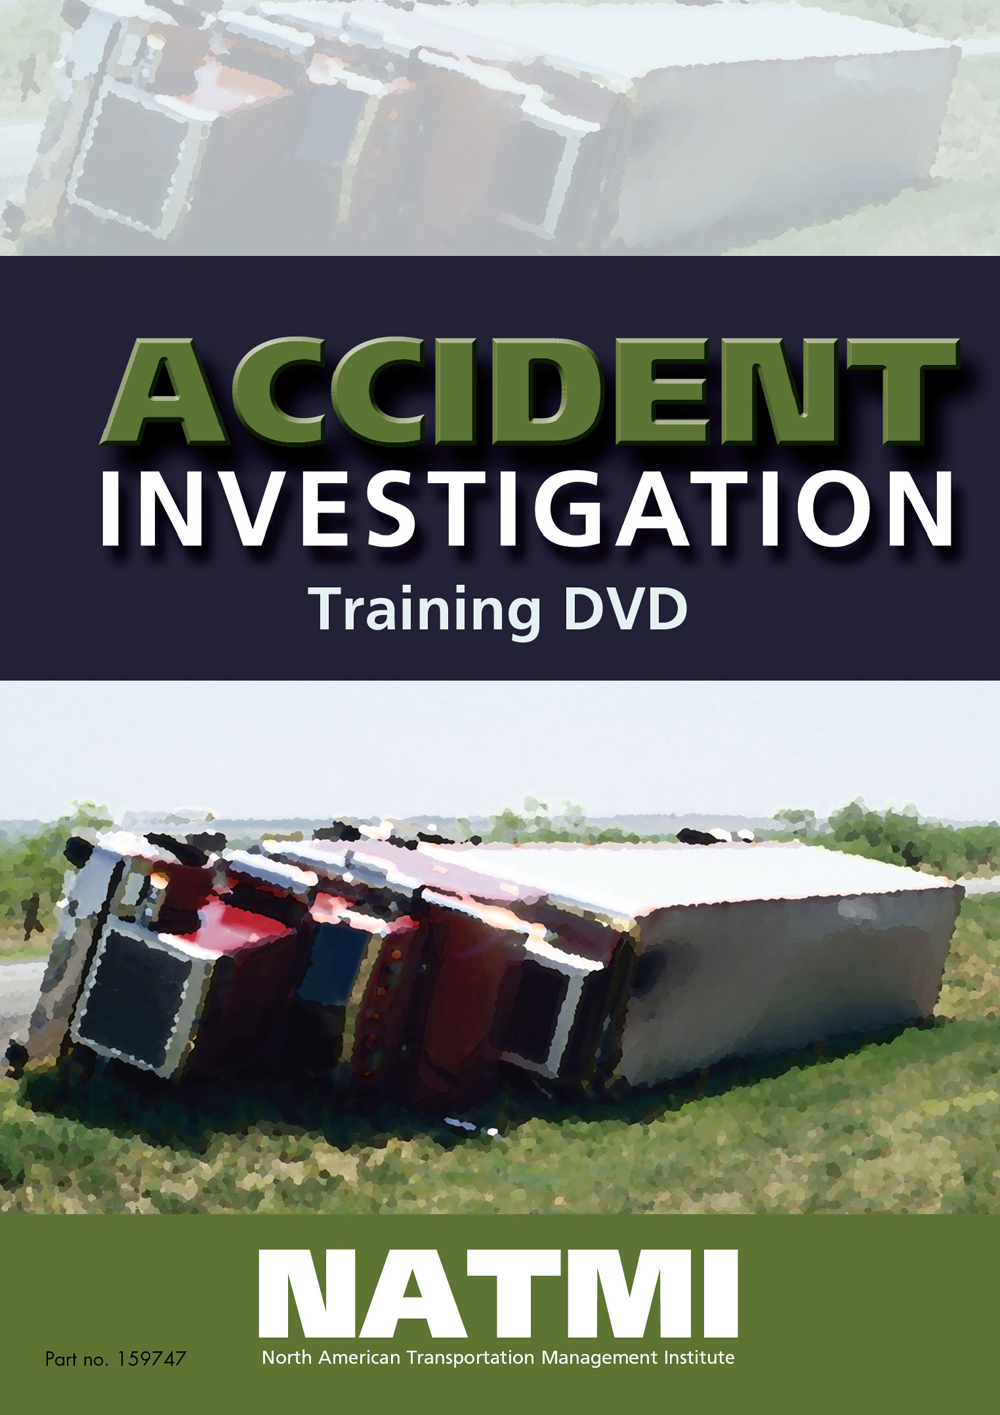 ???label.coverImageAlt??? Accident Investigation: Training DVD 1st Edition by Delmar/NATMI